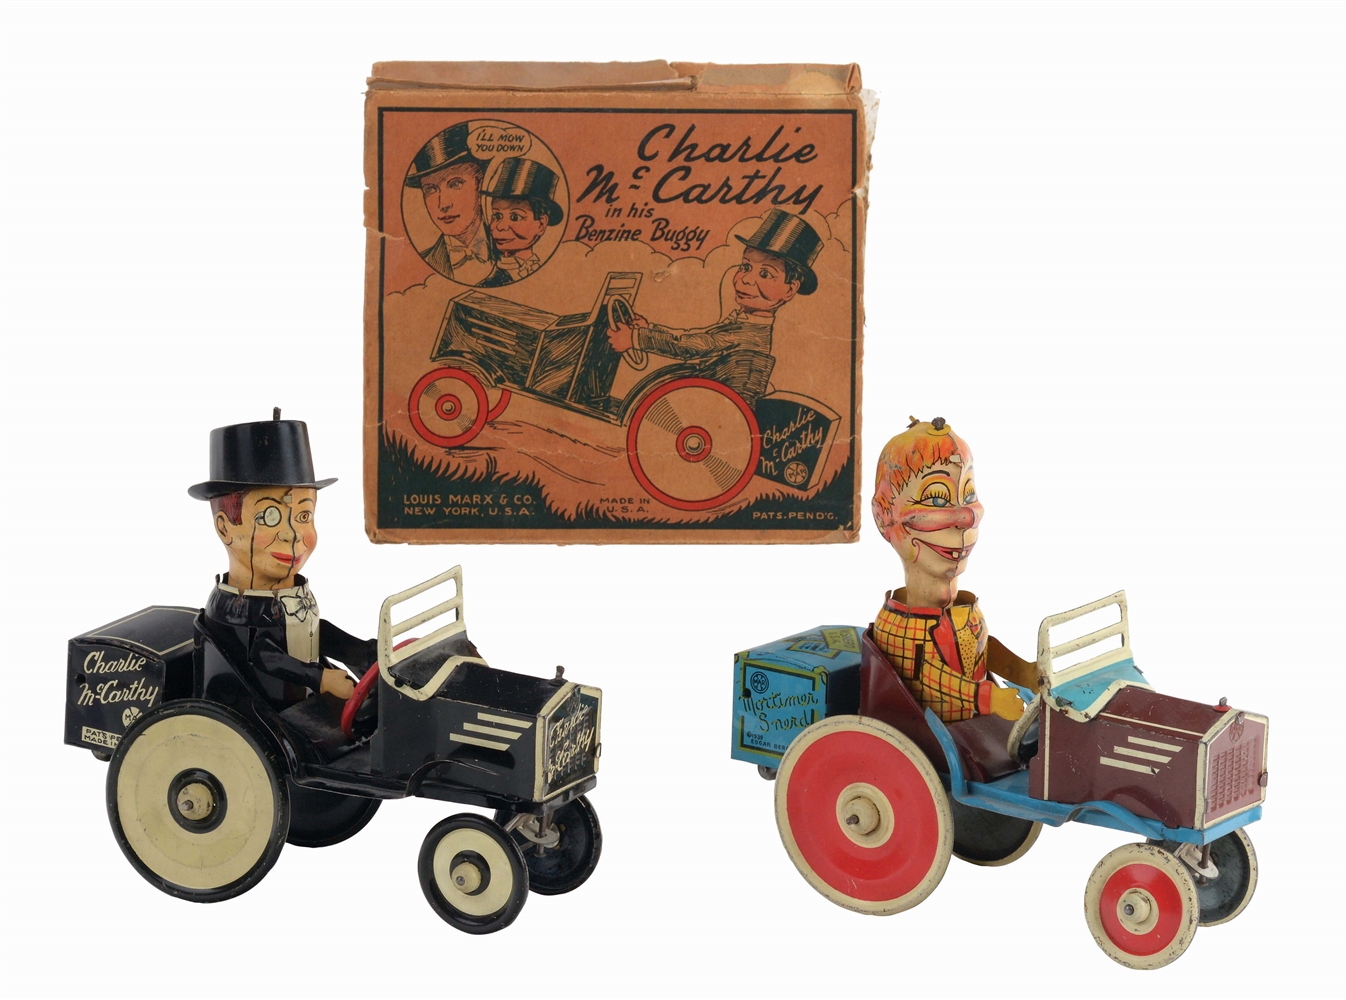 LOT OF 2 MARX TIN-LITHO WIND-UP COMIC CHARACTER WHOPPEE CAR TOYS.